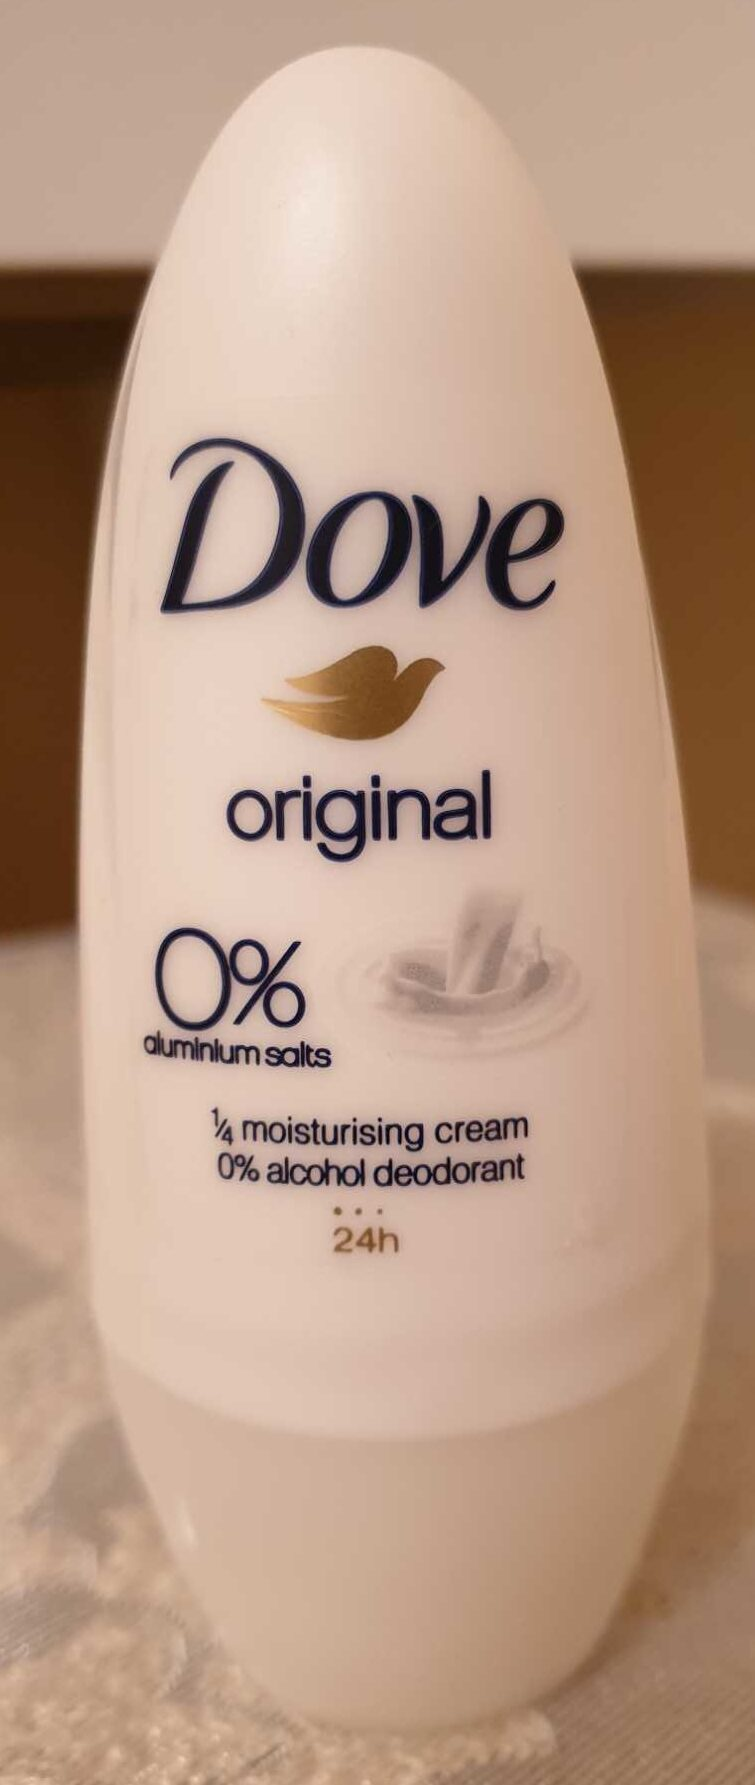 Déodorant dove original - Product